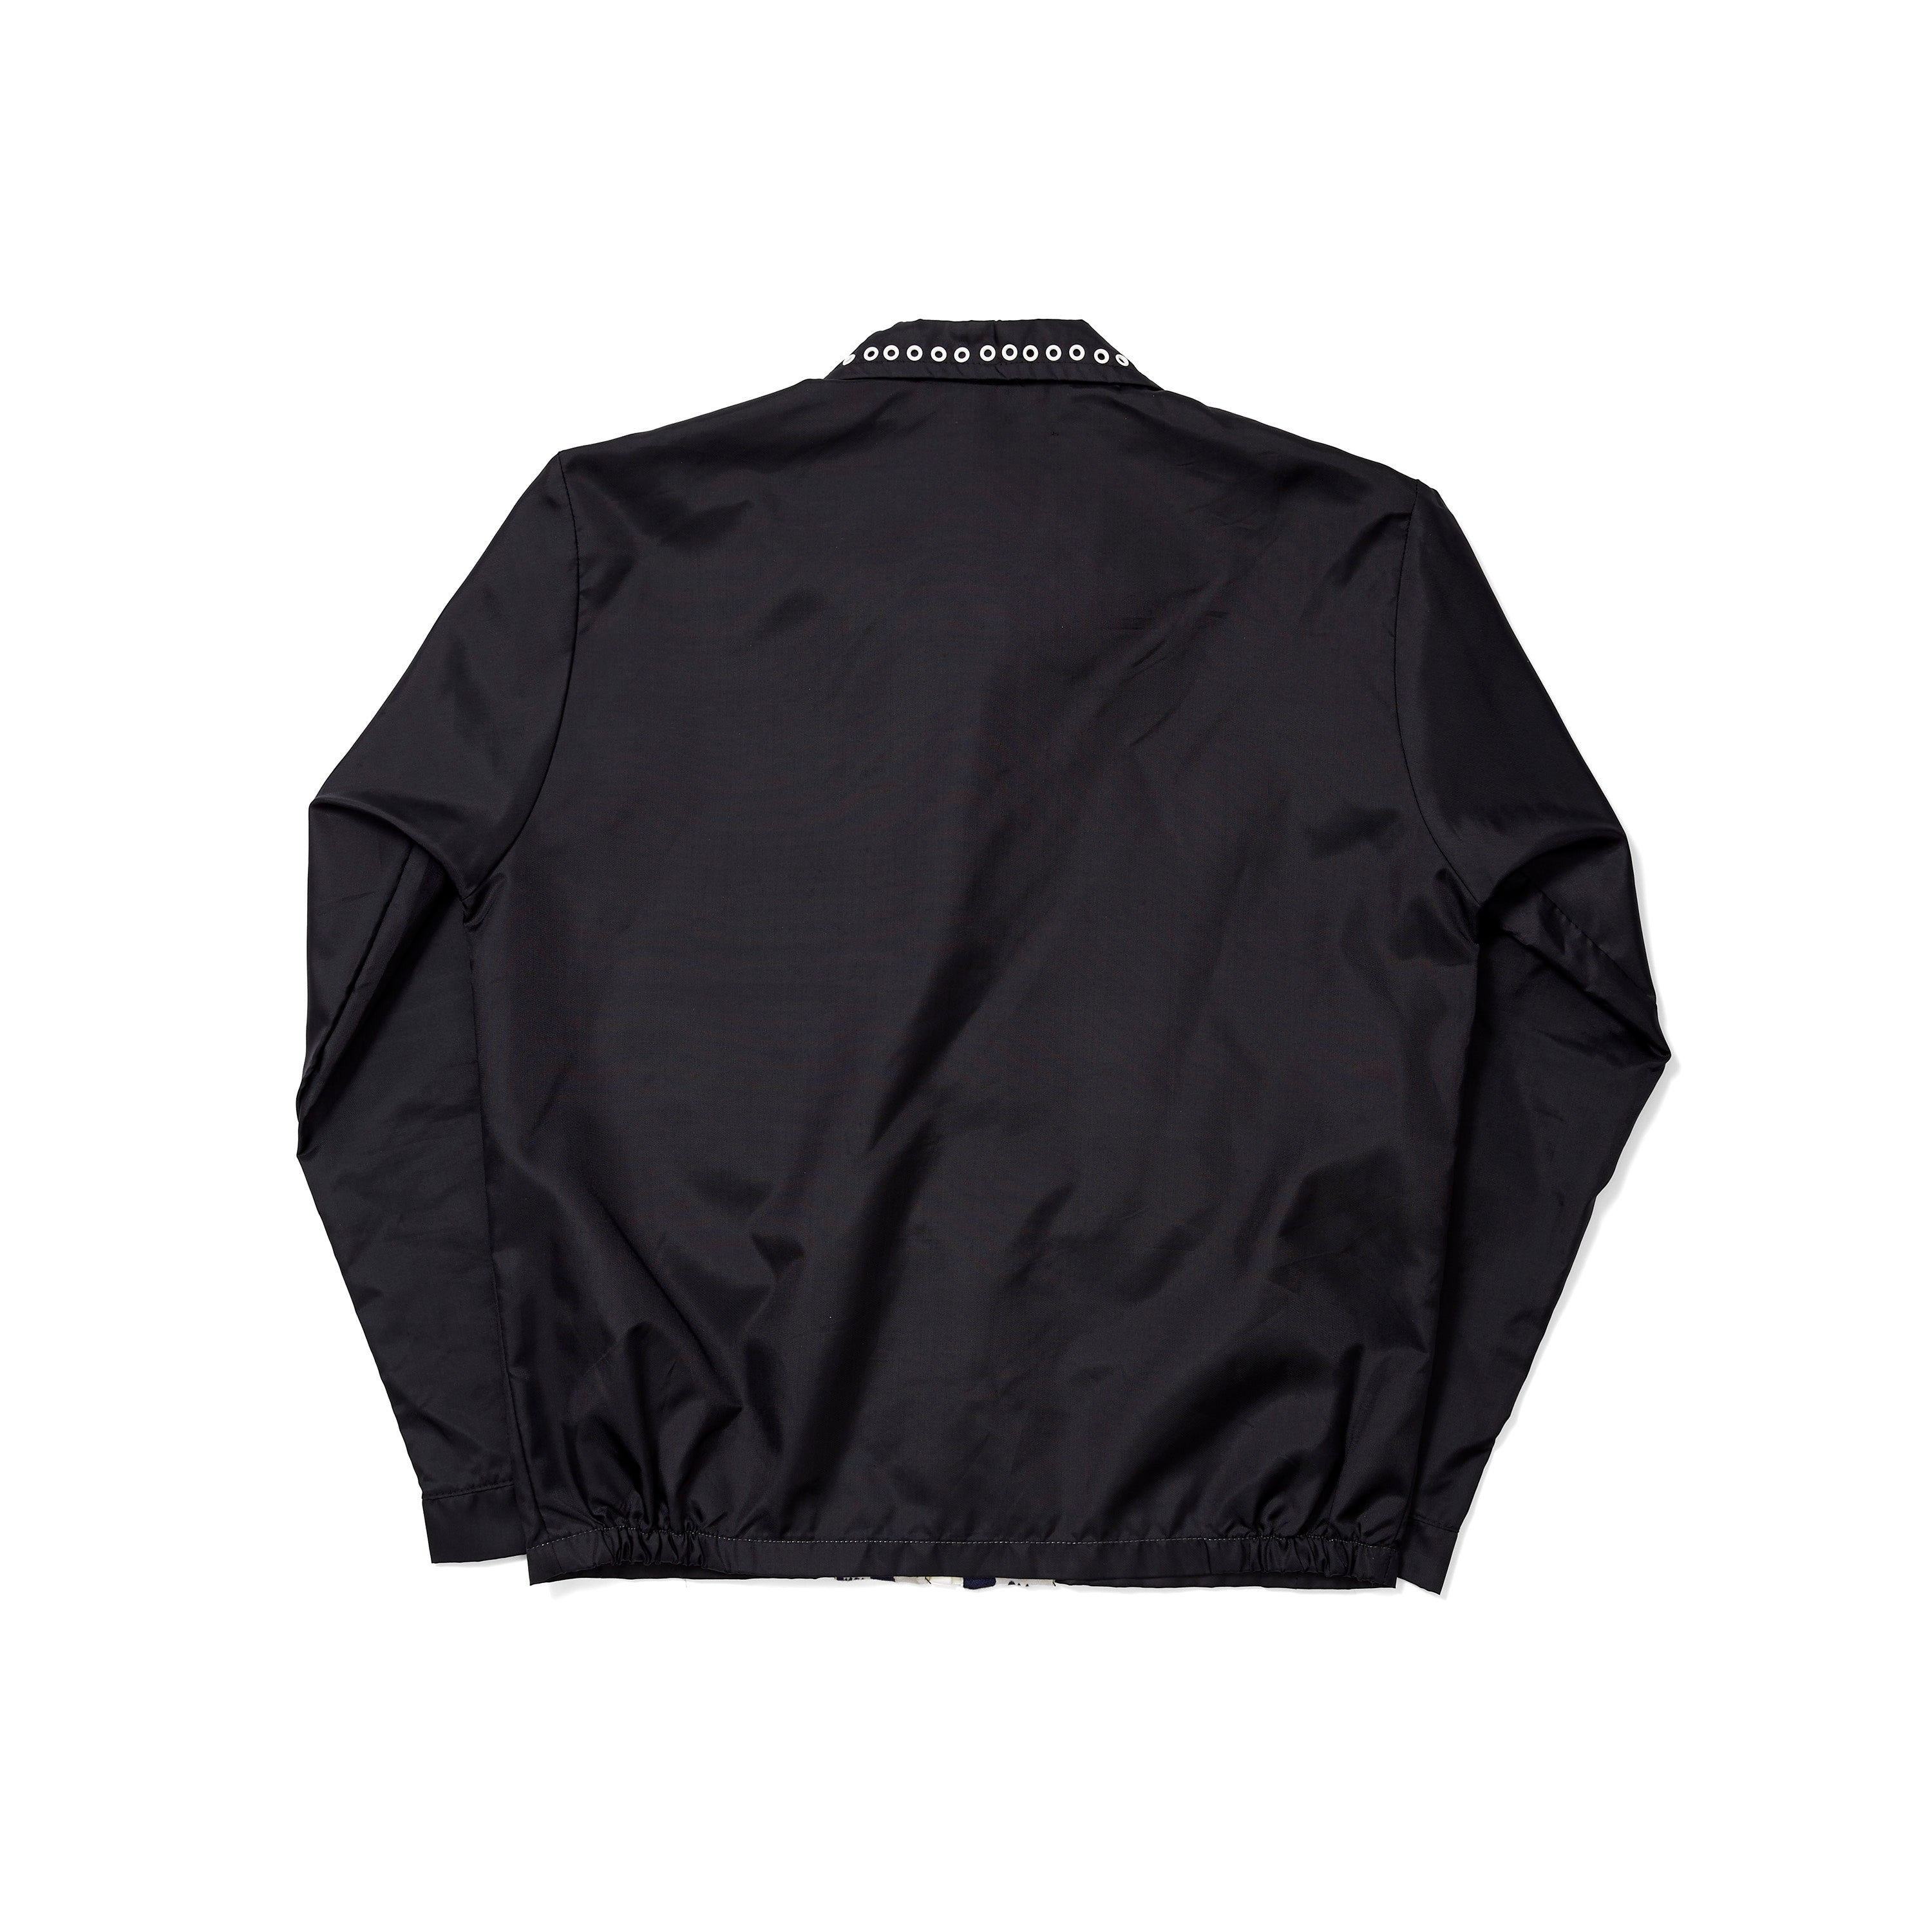 Vintage Black Windbreaker with White Eyelets